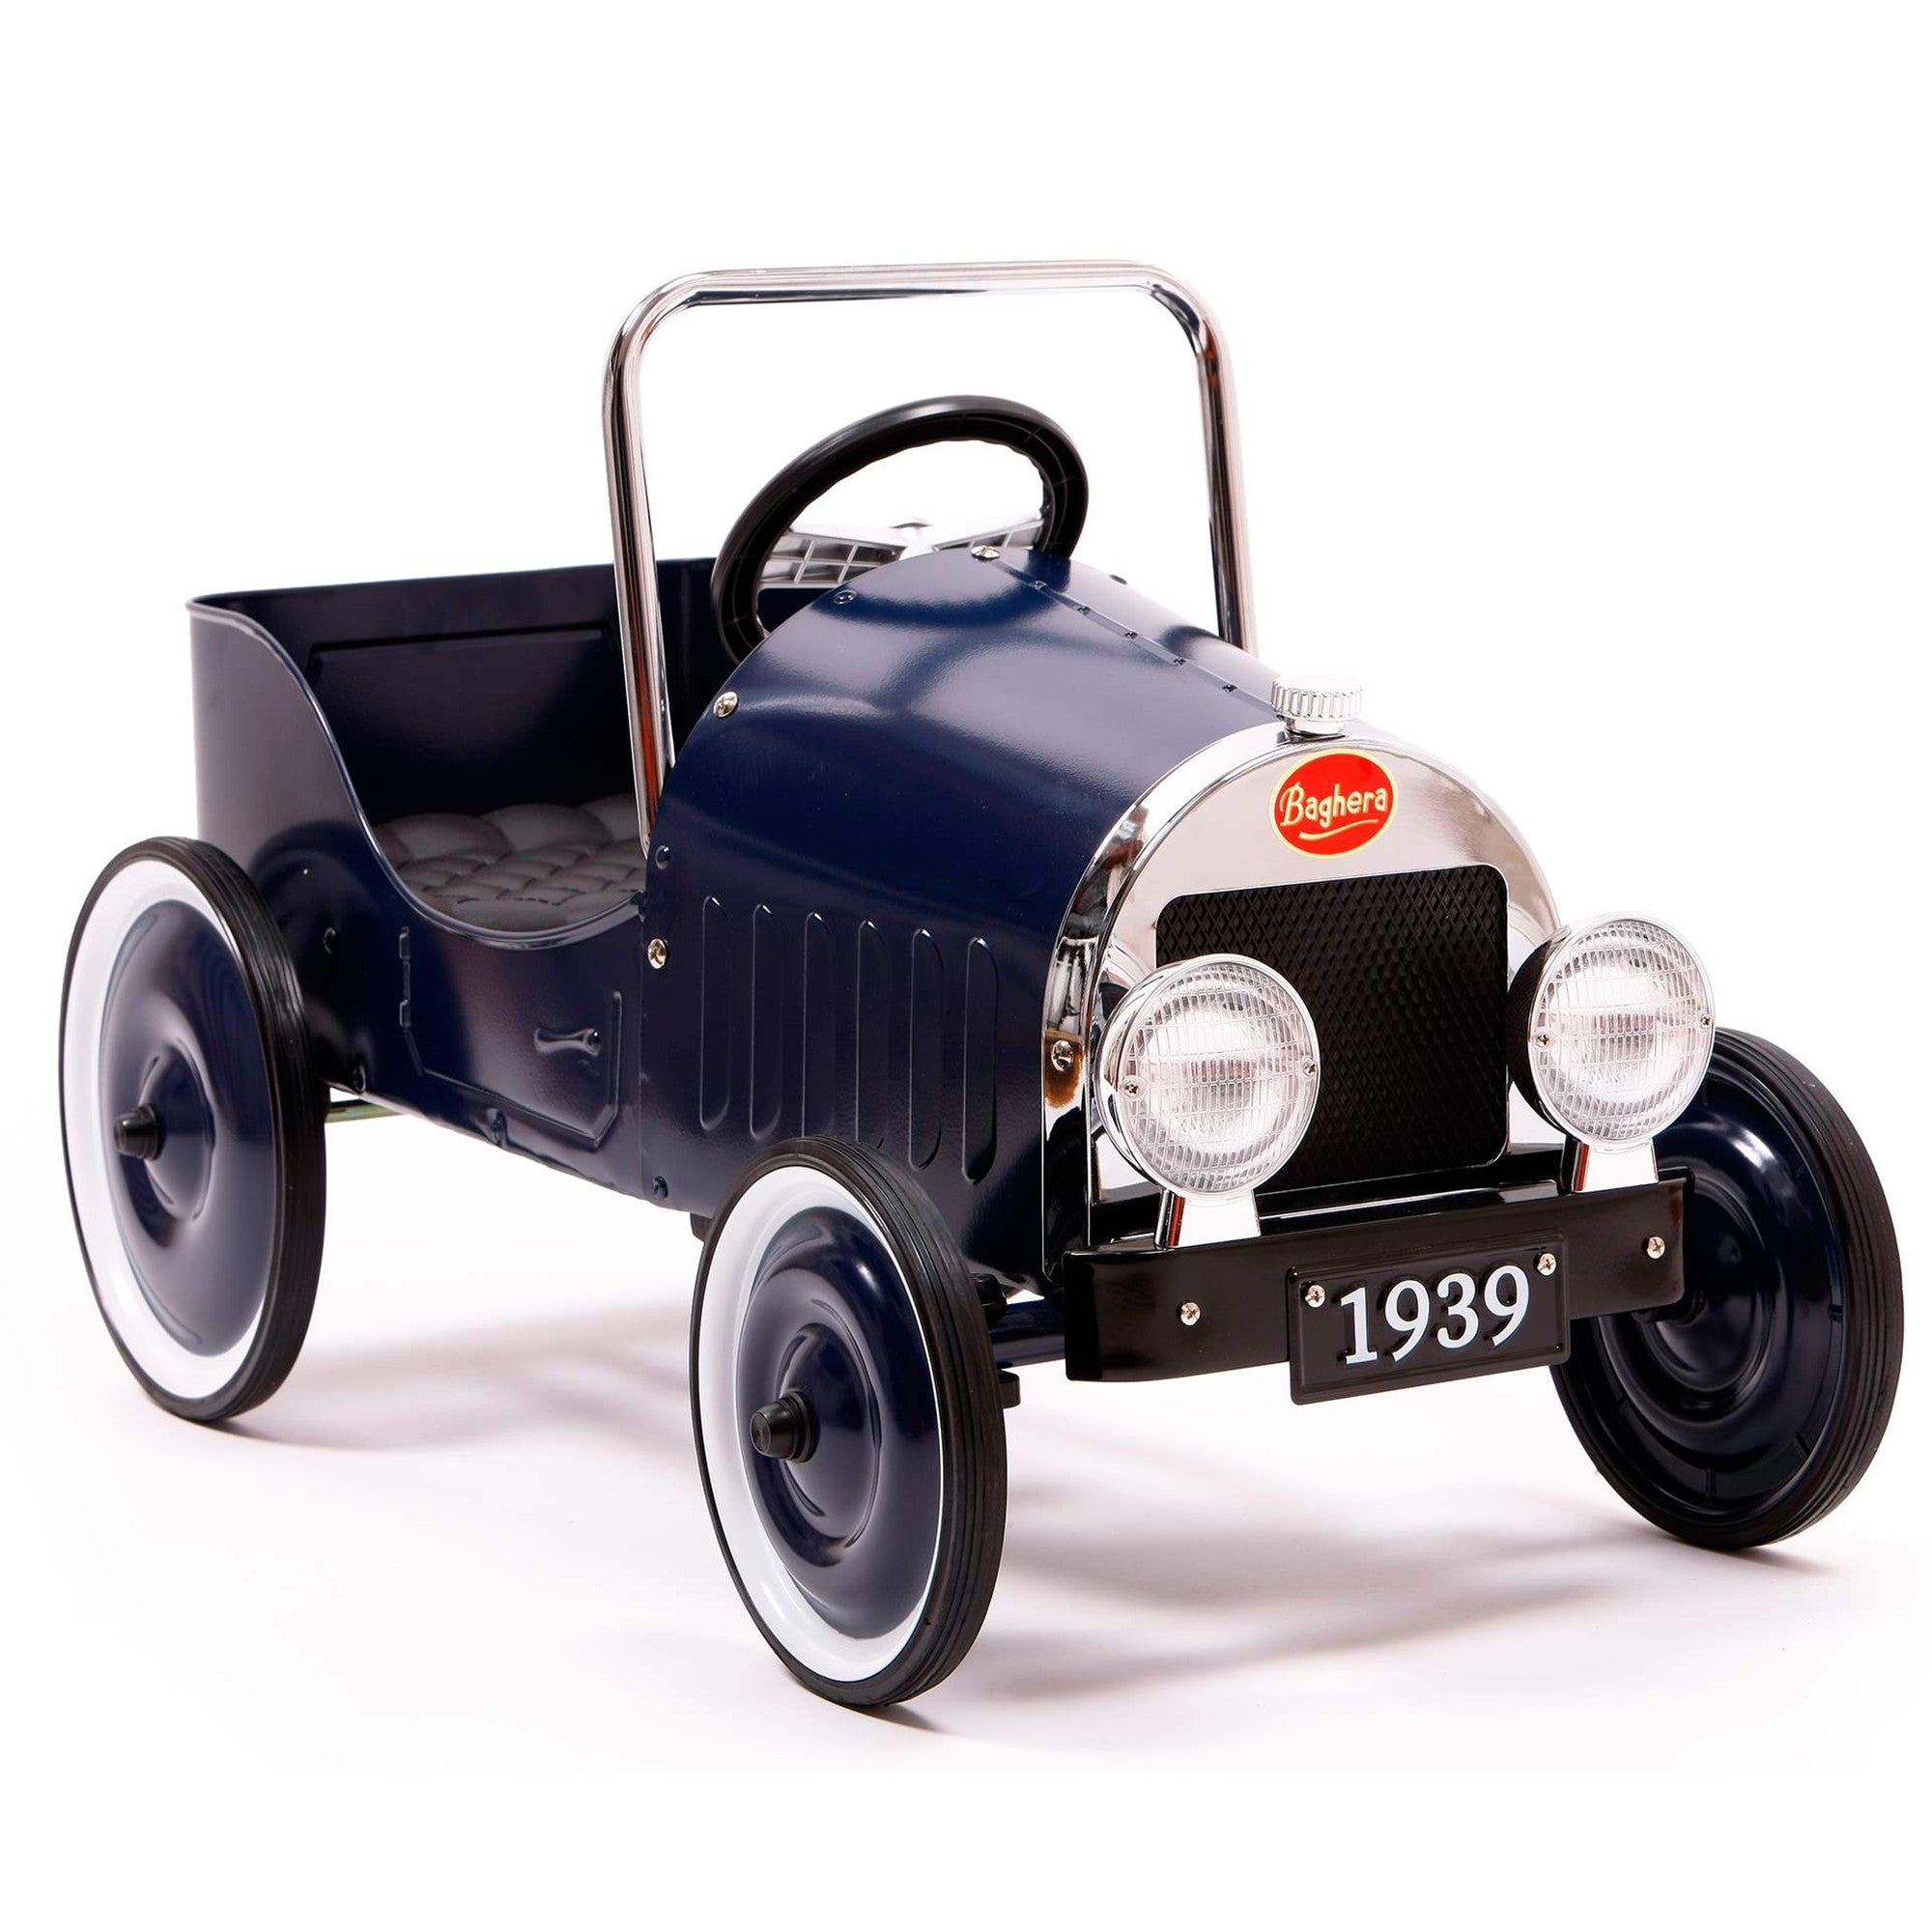 Classic Baghera Pedal Car Baghera Kids Riding Vehicles Blue at Little Earth Nest Eco Shop